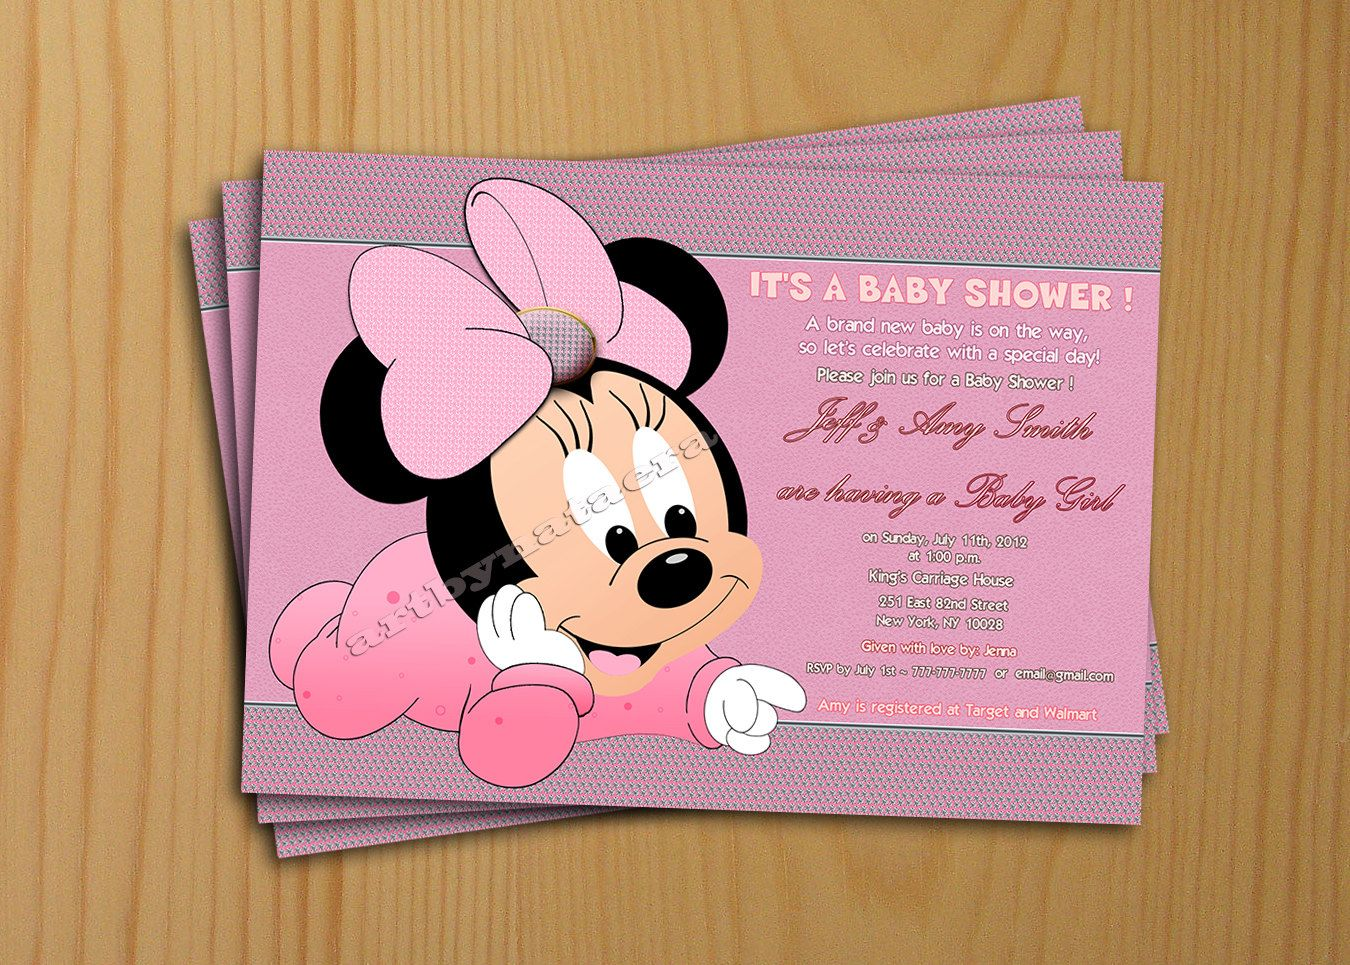 Minnie Mouse Baby Shower Decorations Baby Shower Invitations Pink Background Polkadot Style Photo